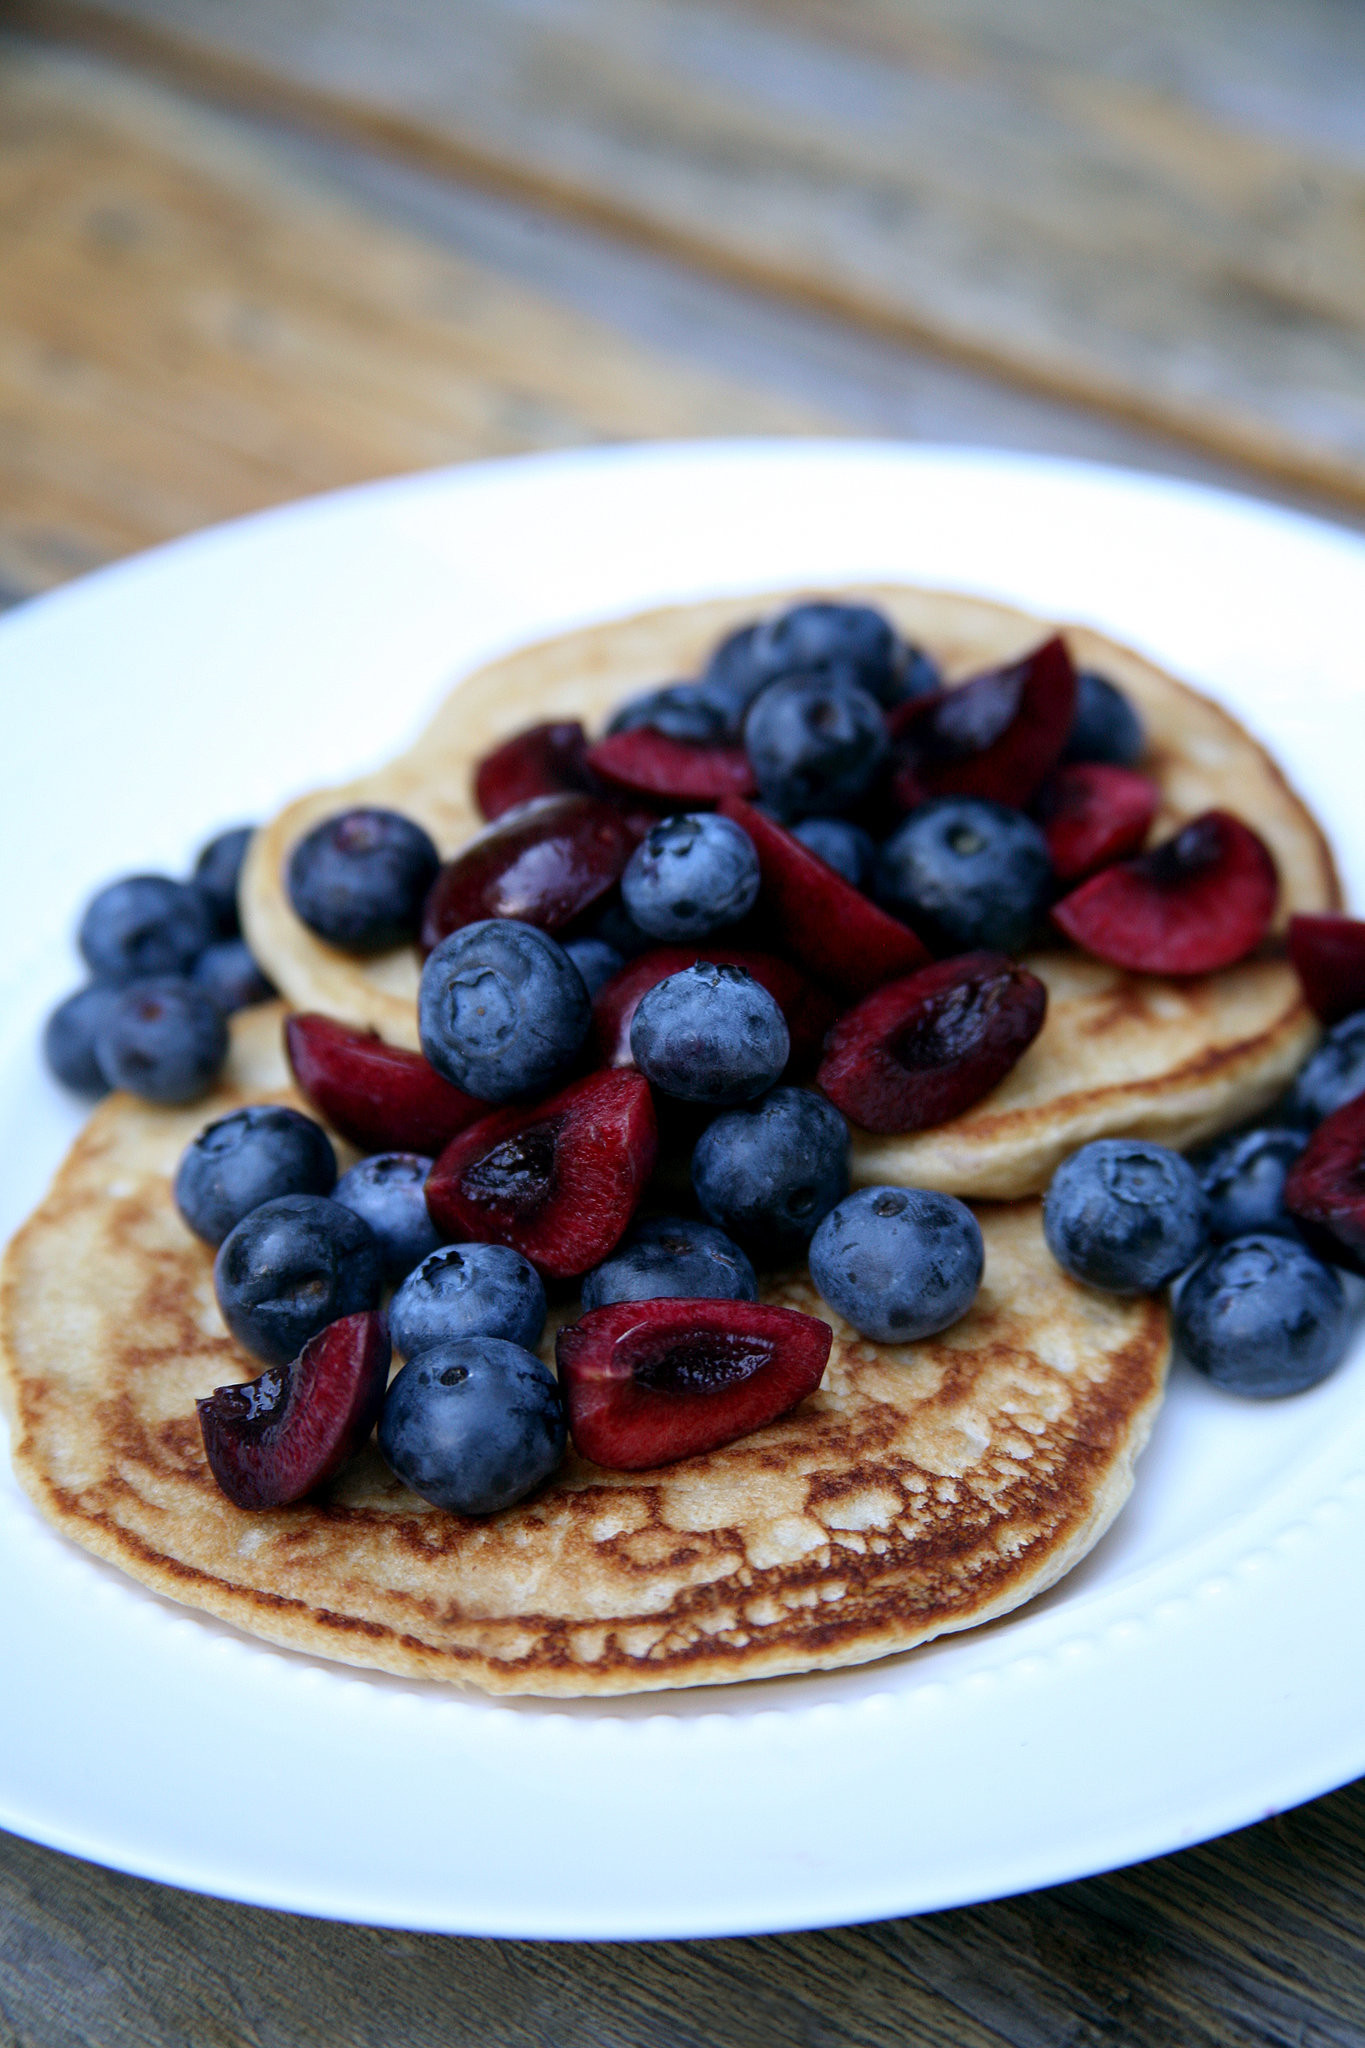 Healthy Vegan Pancakes  Healthy Tasty Vegan Pancakes Recipe 100 Calories